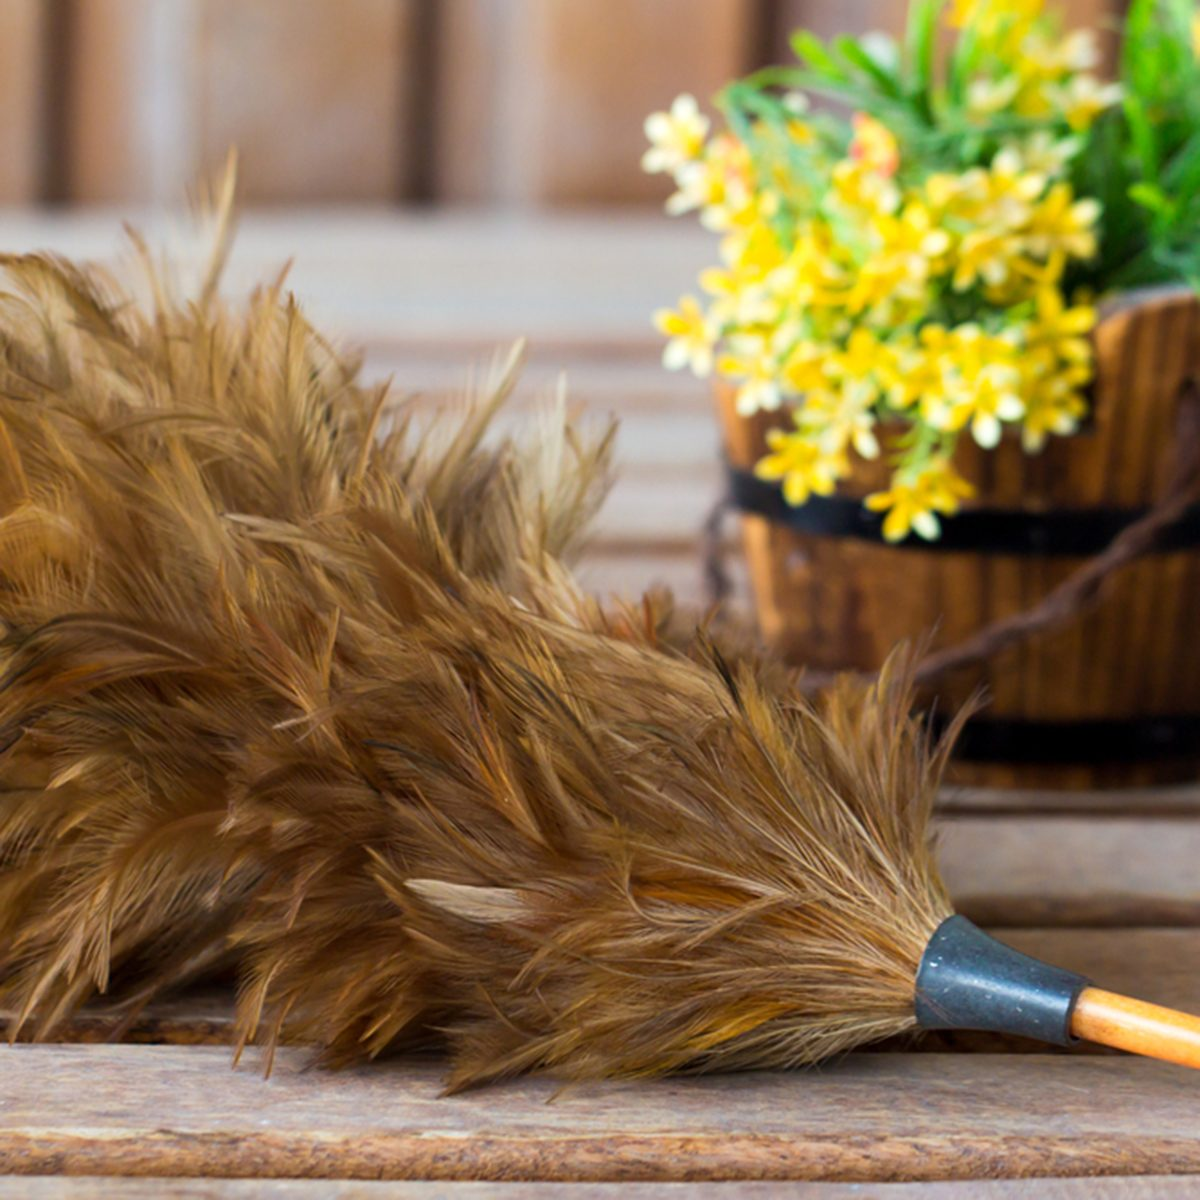 Feather duster on a table